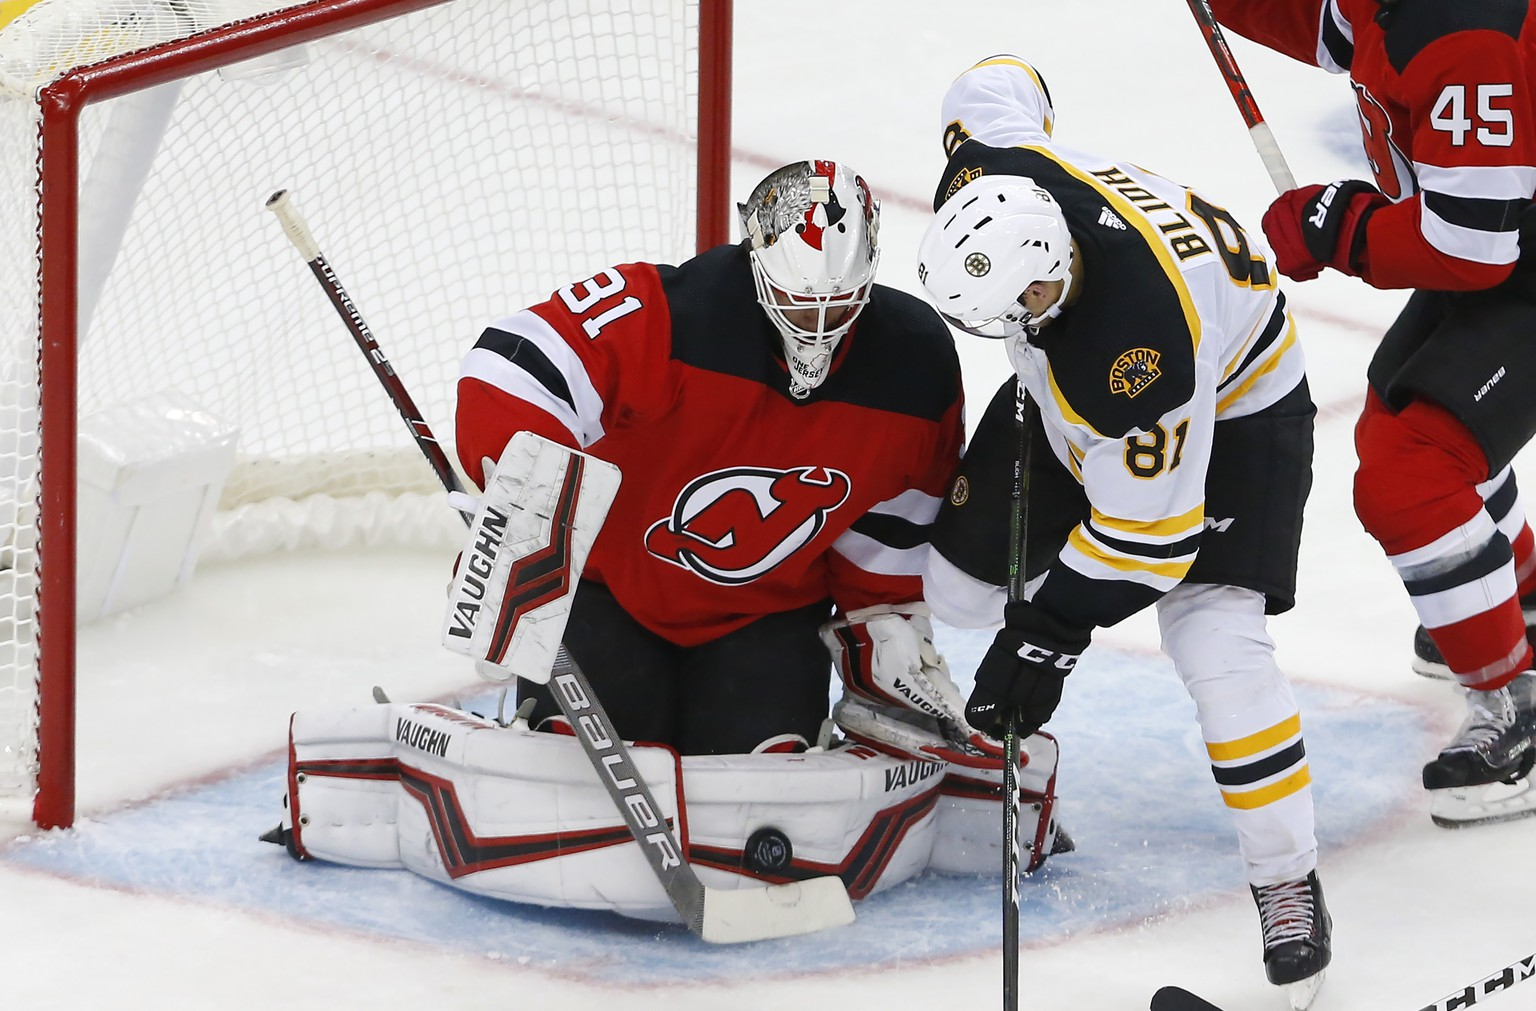 New Jersey Devils goaltender Gilles Senn (31) makes a save against Boston Bruins left wing Anton Blidh (81) during the third period of an NHL preseason hockey game, Monday, Sept. 16, 2019, in Newark, N.J. (AP Photo/Noah K. Murray)